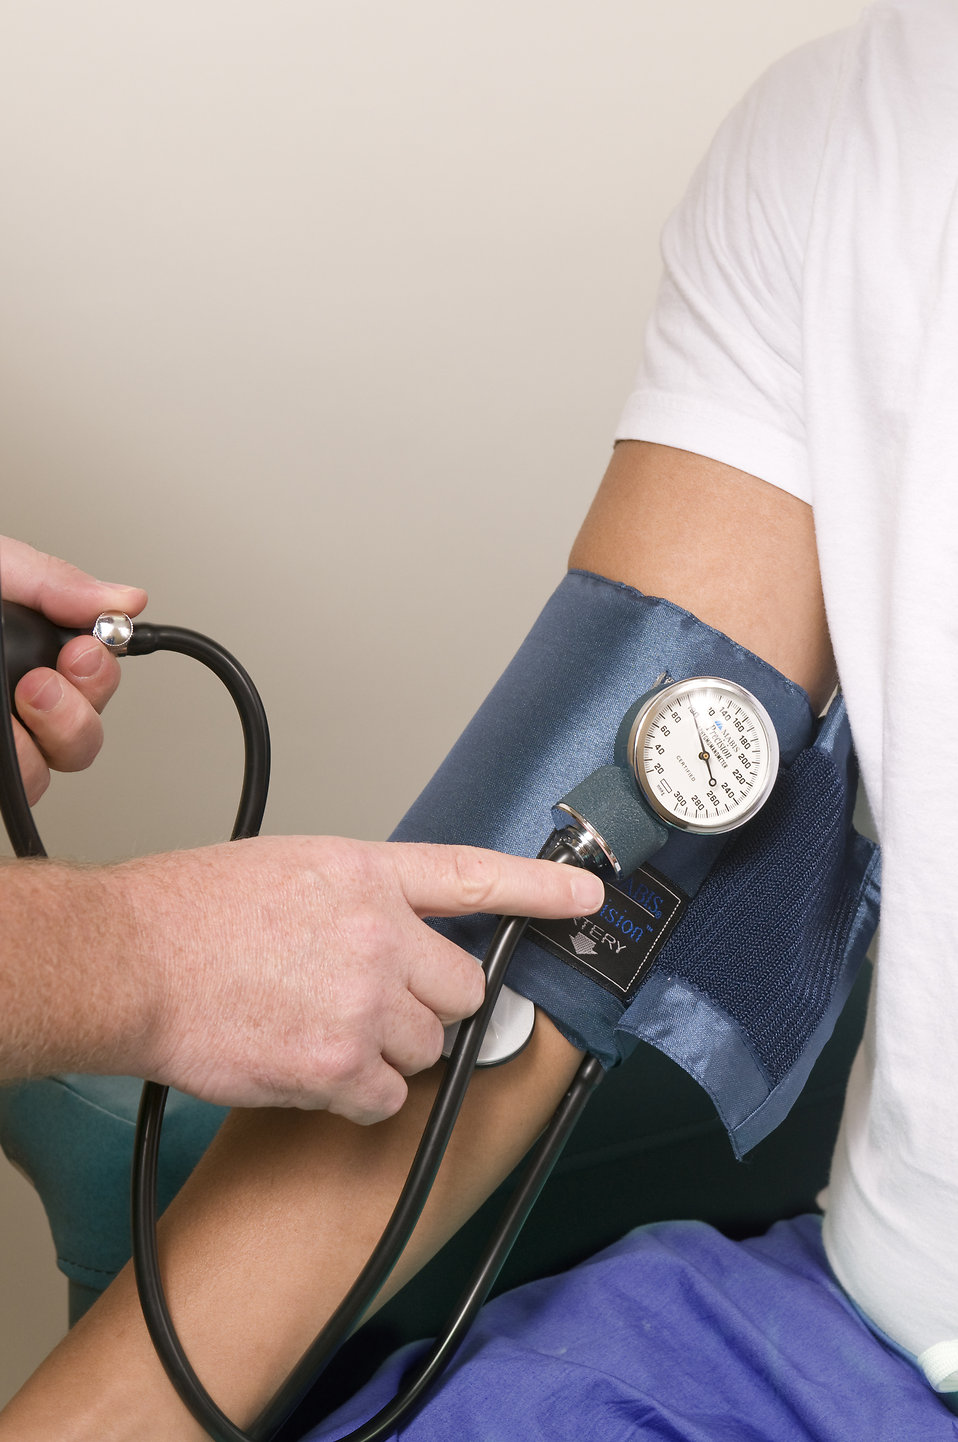 Have High Blood Pressure? Might Be A Case of Misdiagnosis